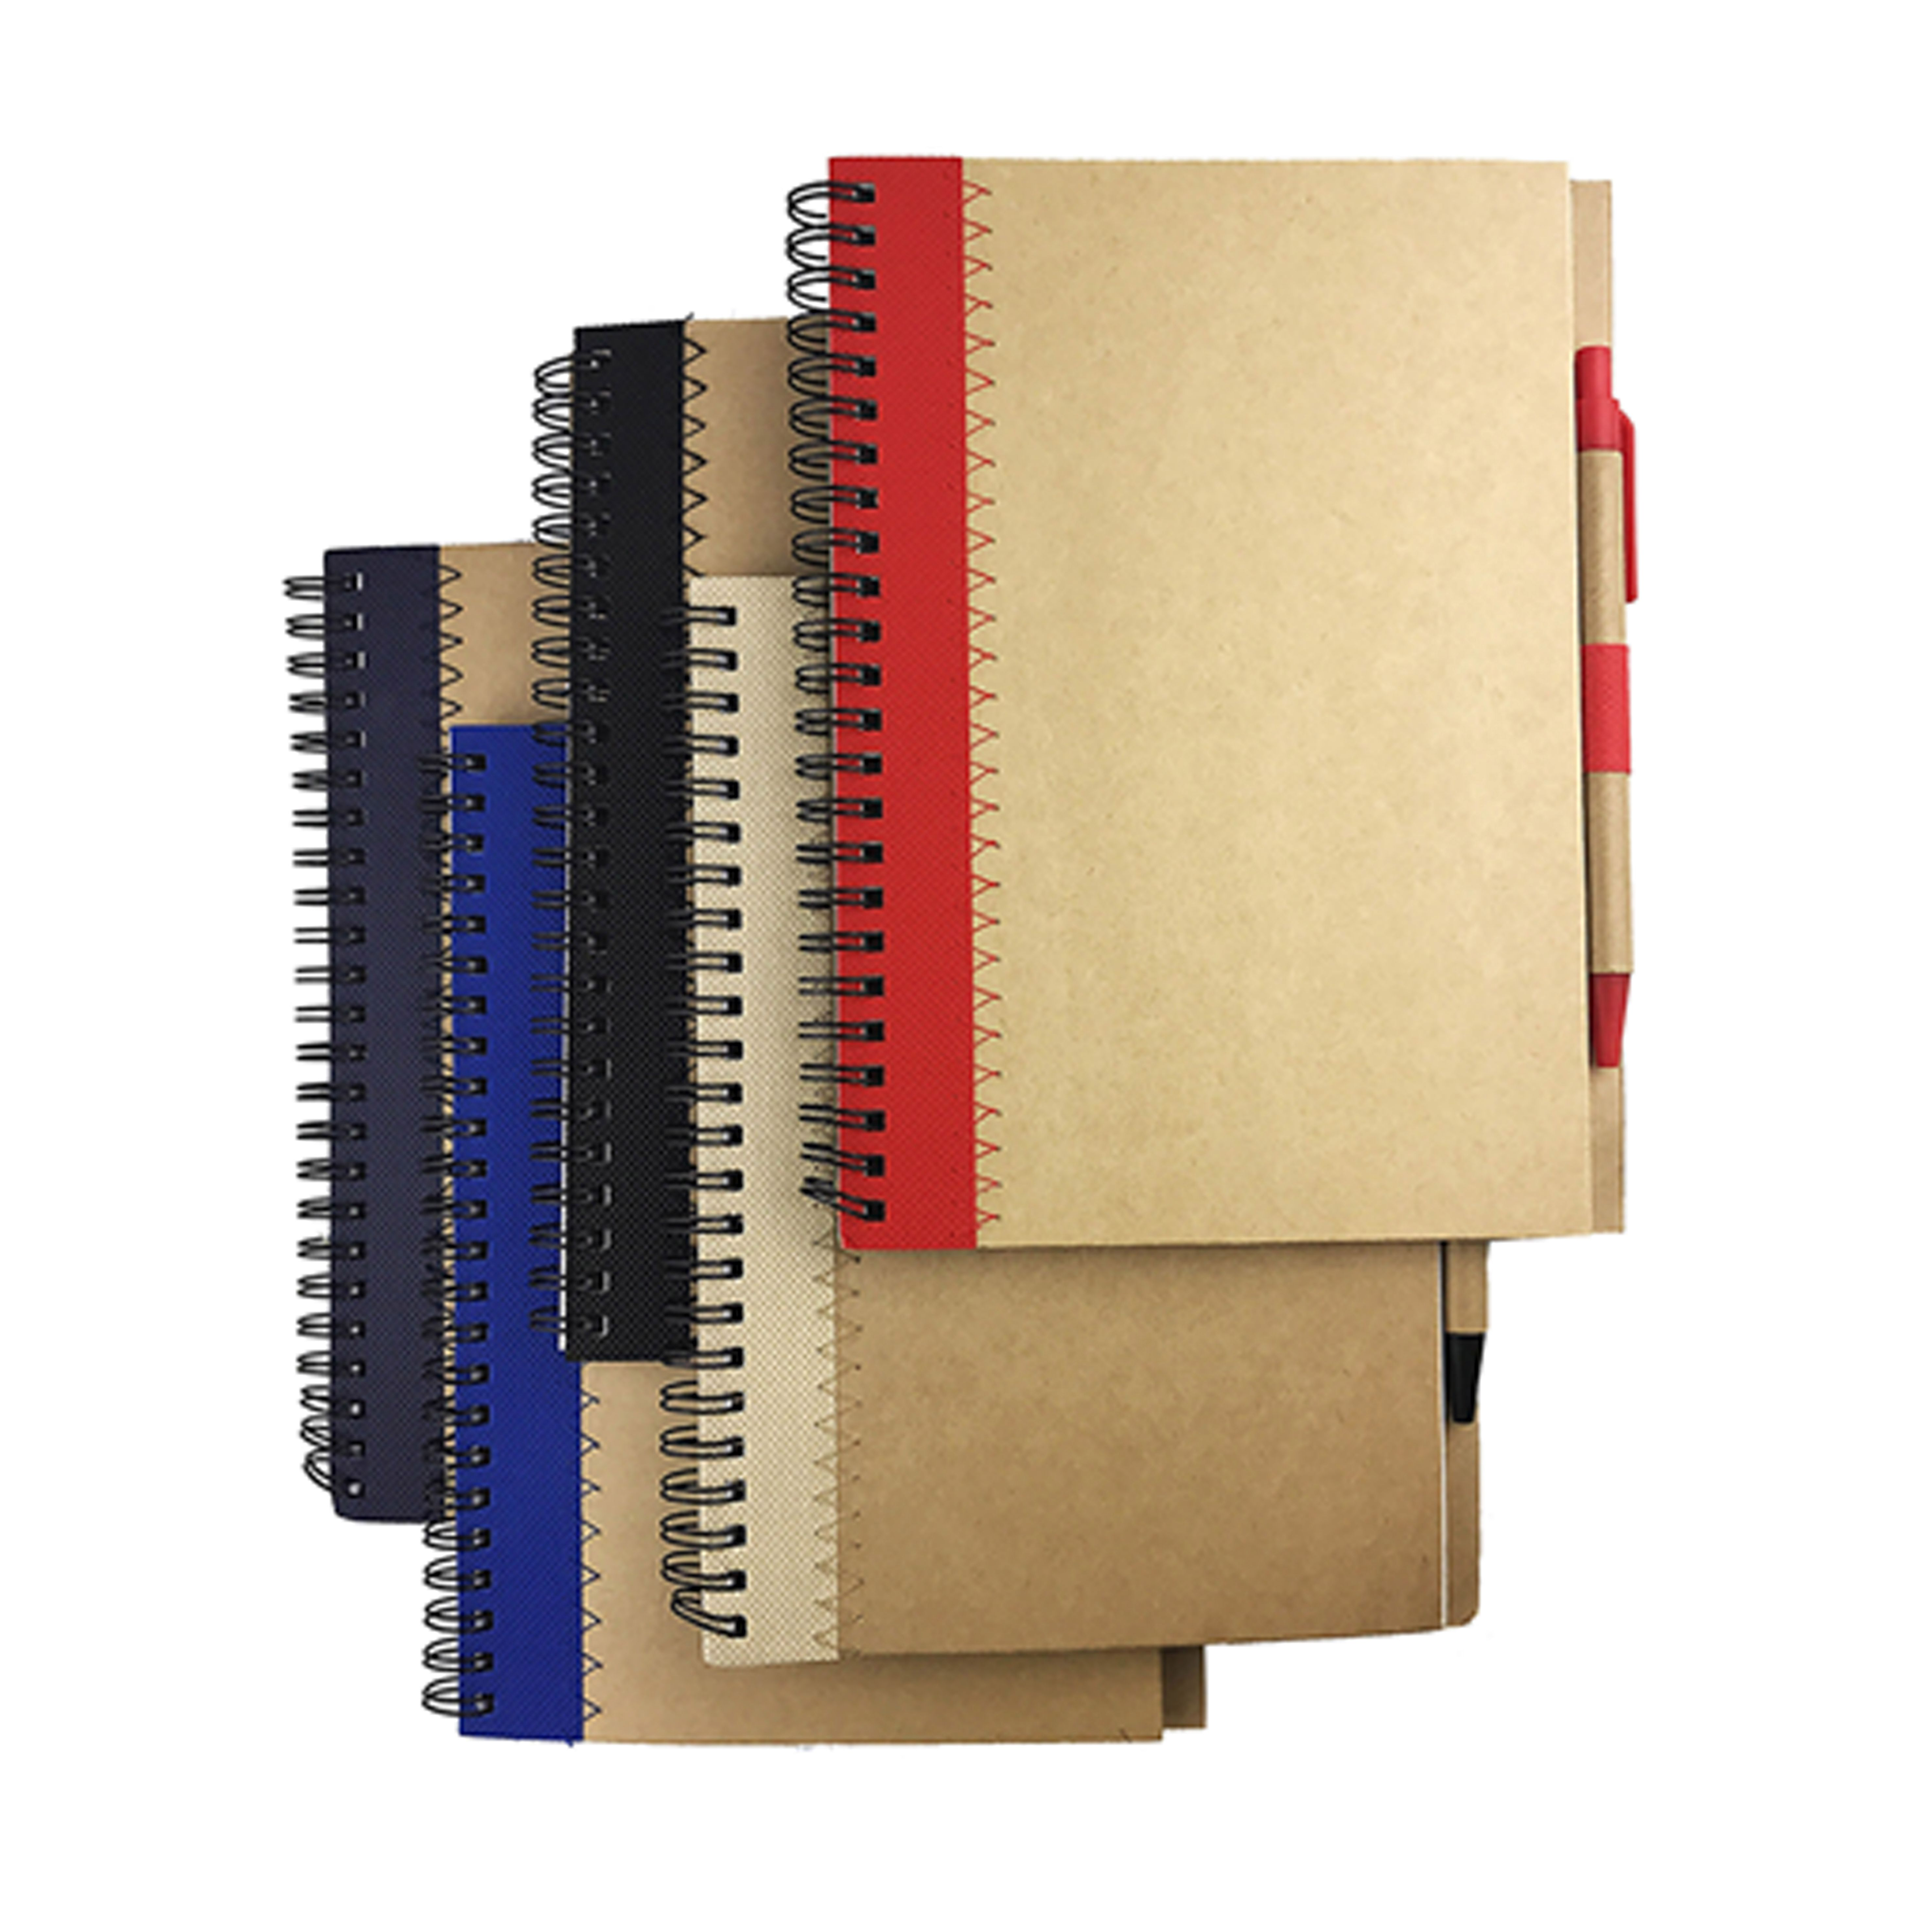 Nb010 Envi A5 Recycled Paper Note Book